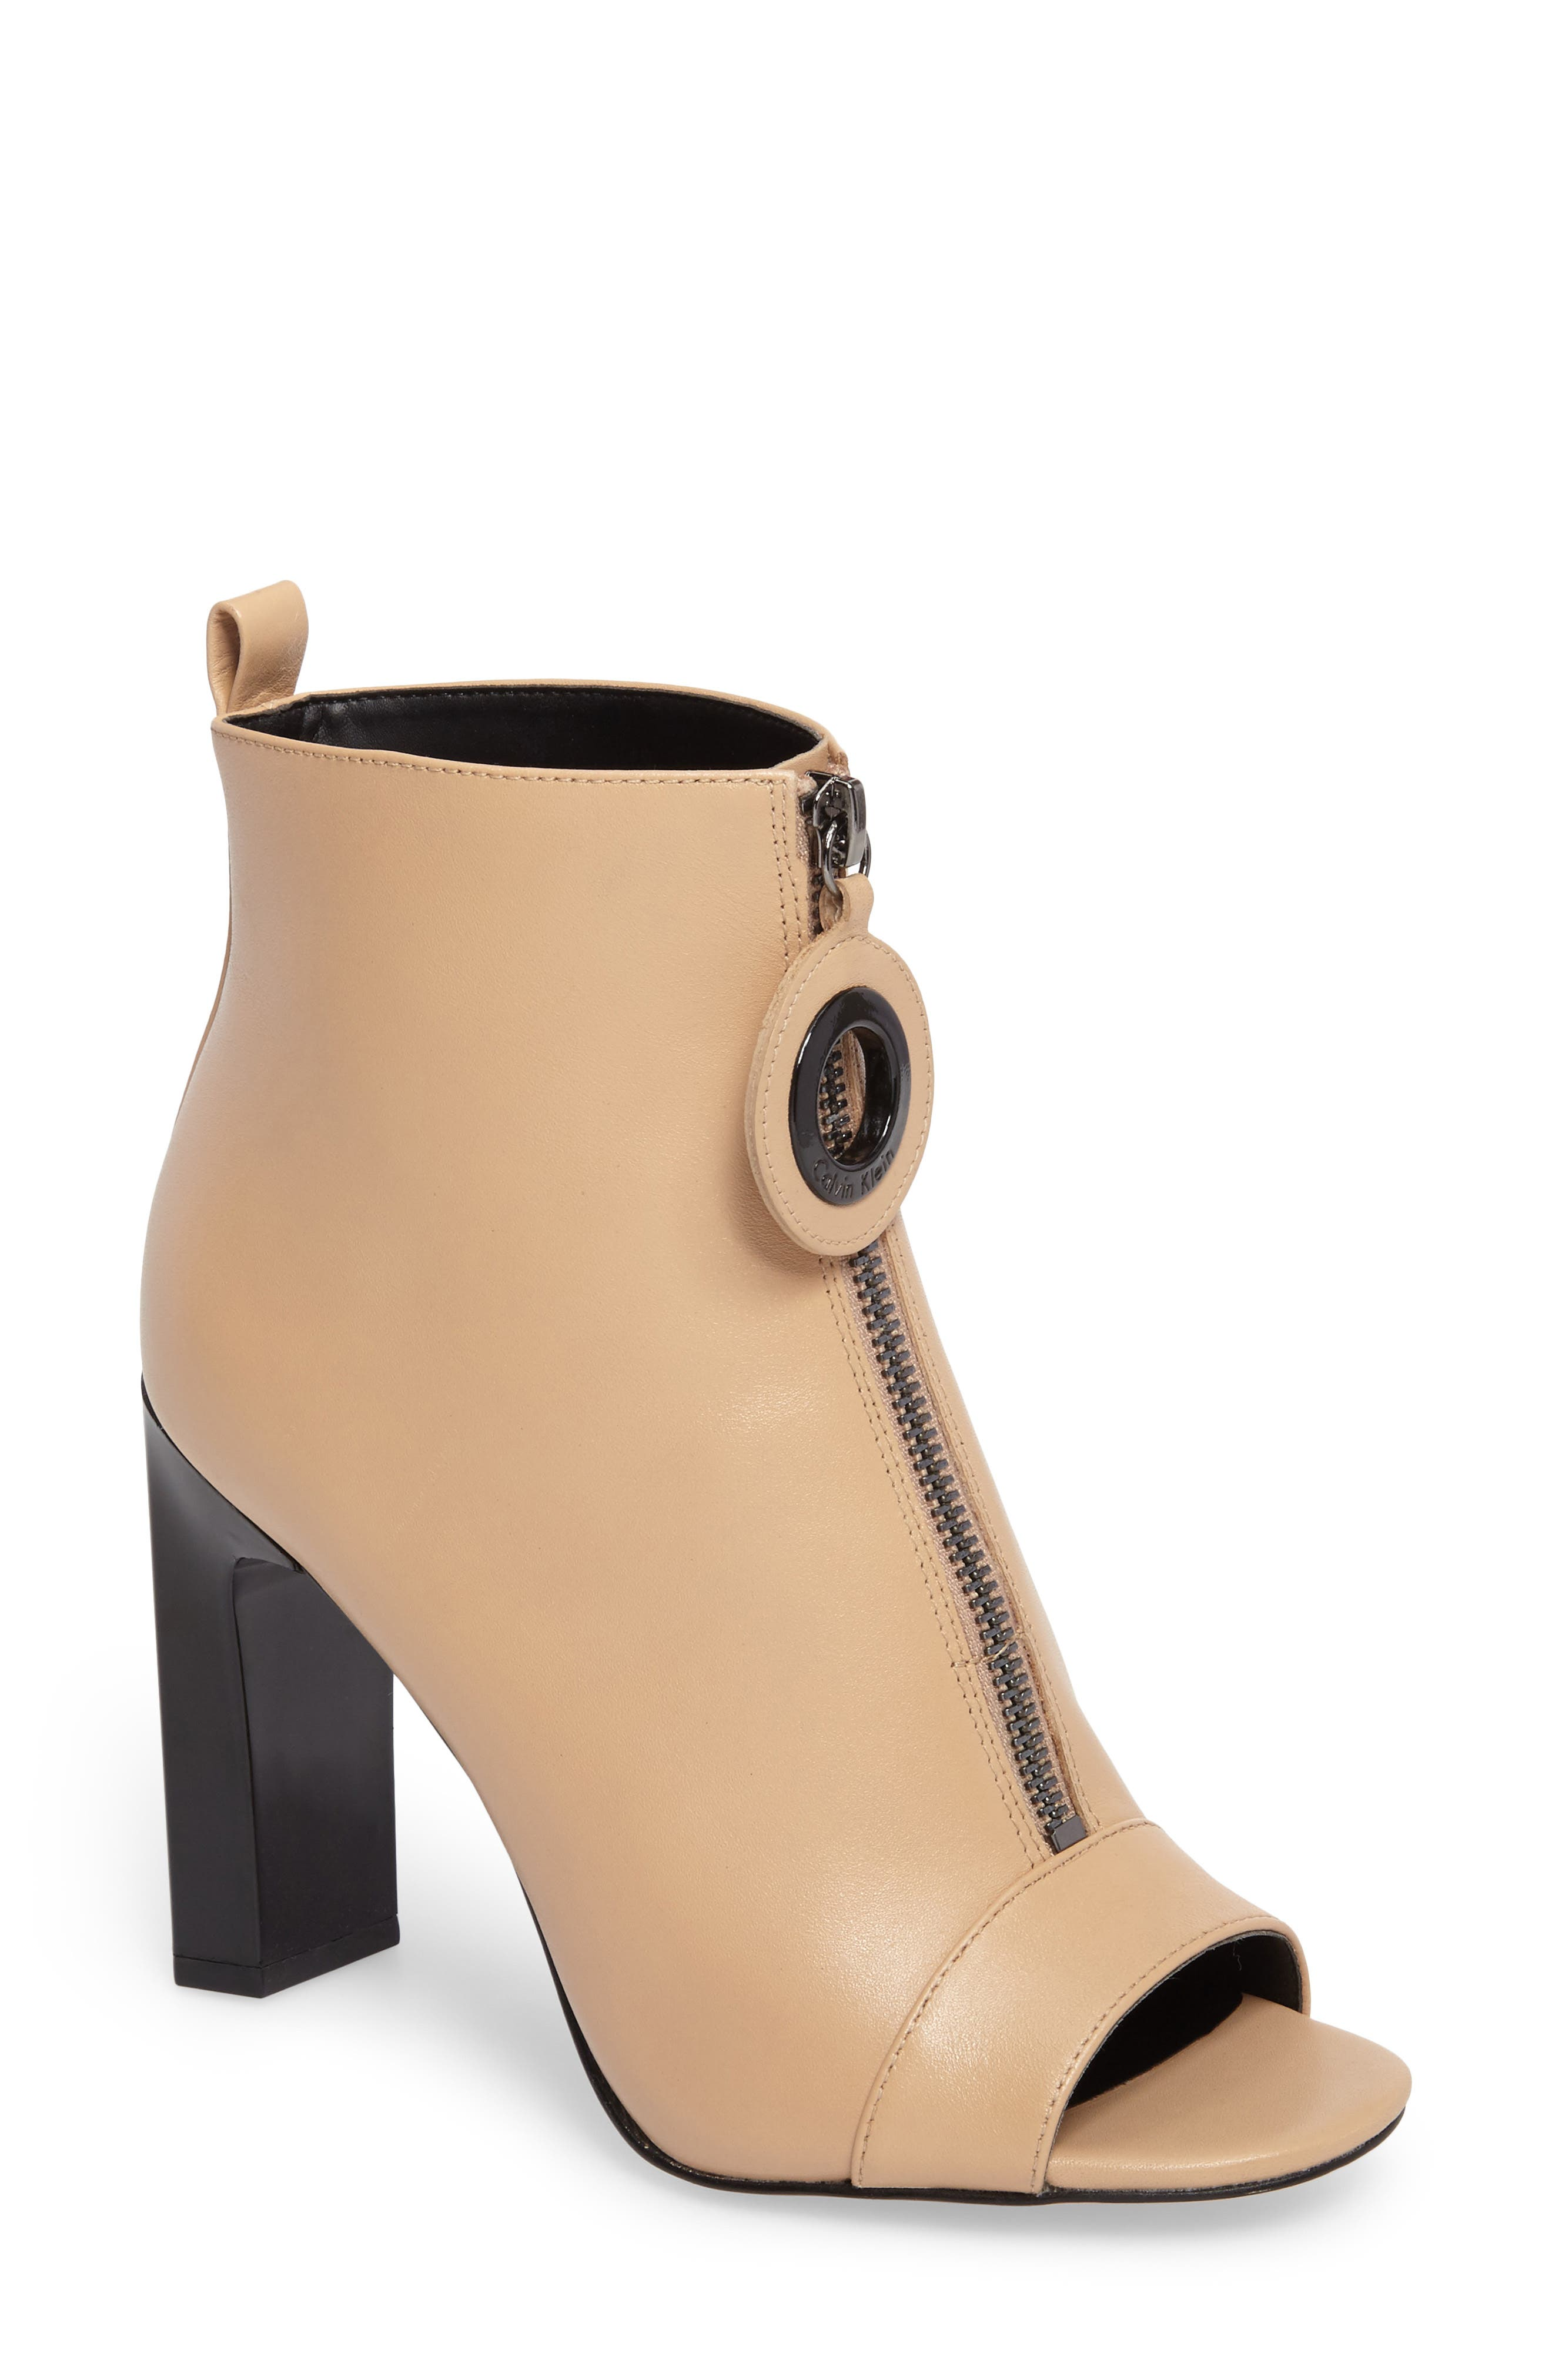 Minda Open Toe Bootie,                         Main,                         color, Sandstrom Leather